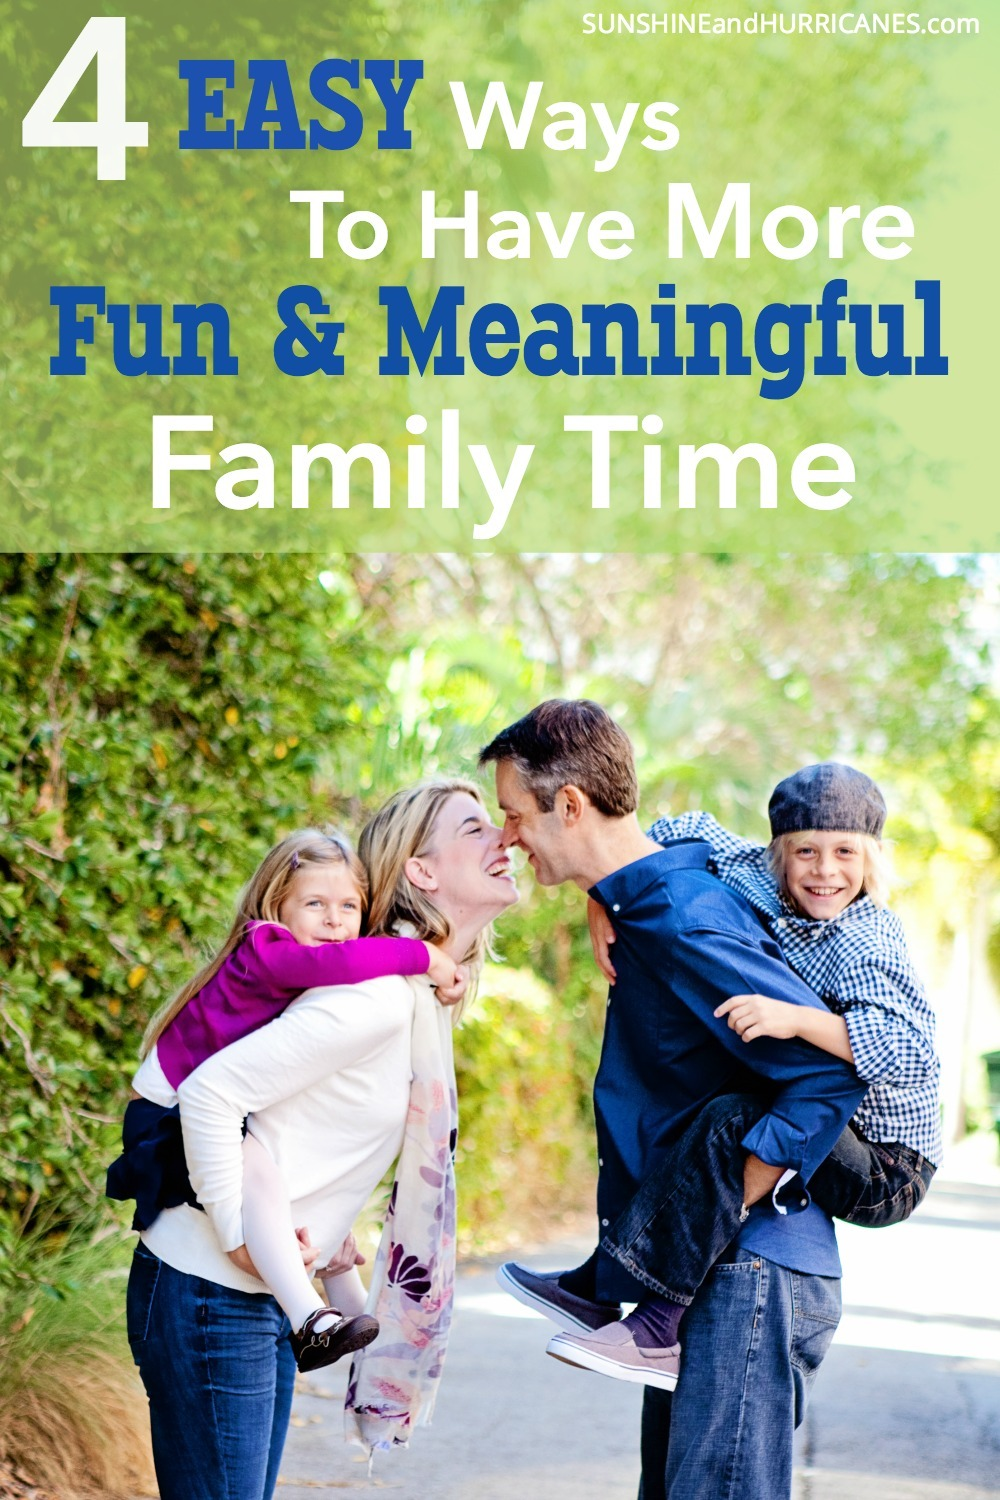 Are you looking for more ways you can connect with your kids? Try these 4 family time ideas that will help make everyday activities more meaningful and fun. SunshineandHurricanes.com